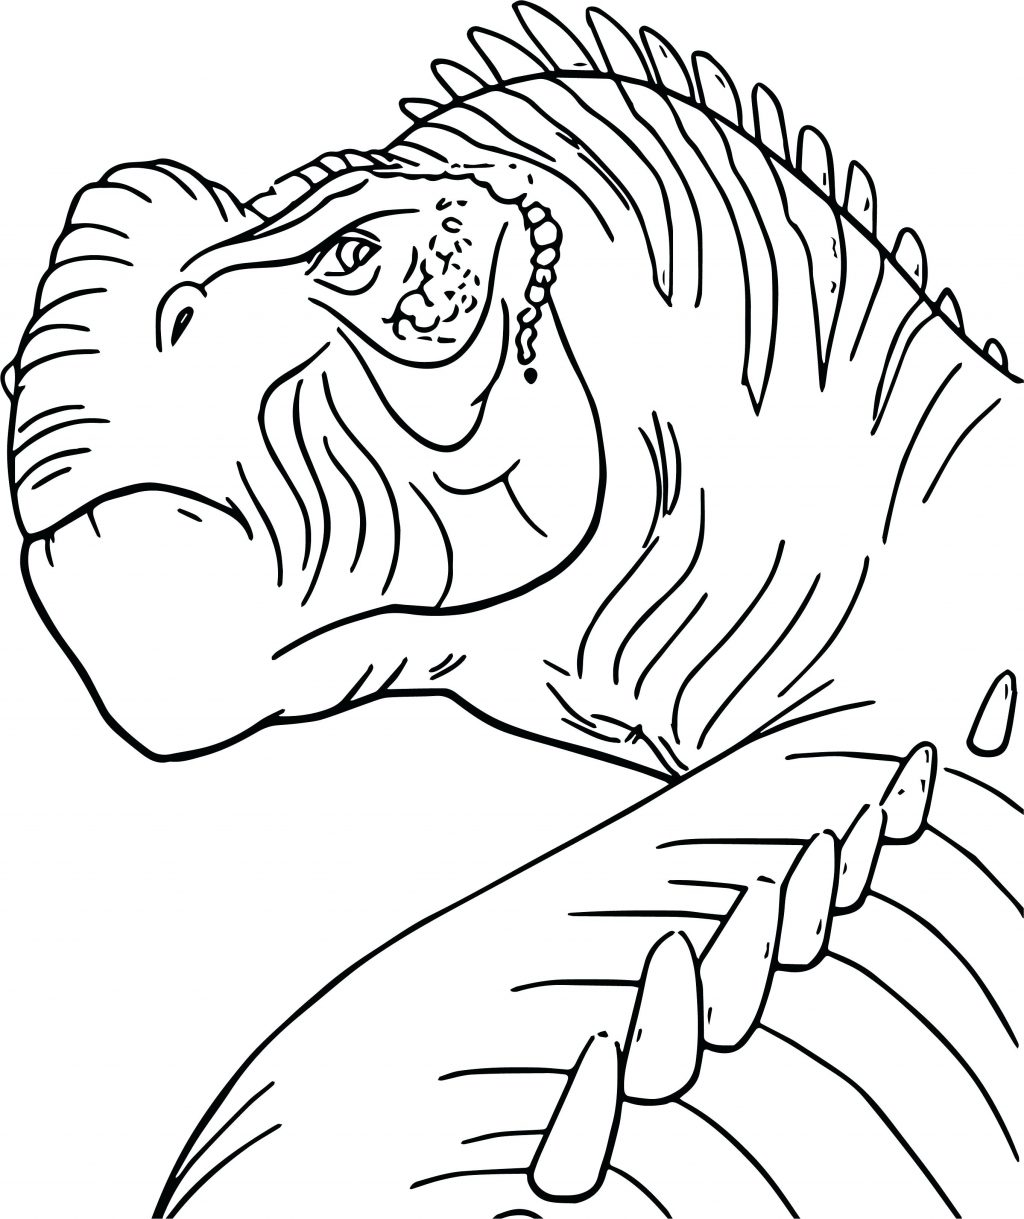 1024x1219 Coloring Pages Dinosaur Color Pages S Head Coloring Page Animal